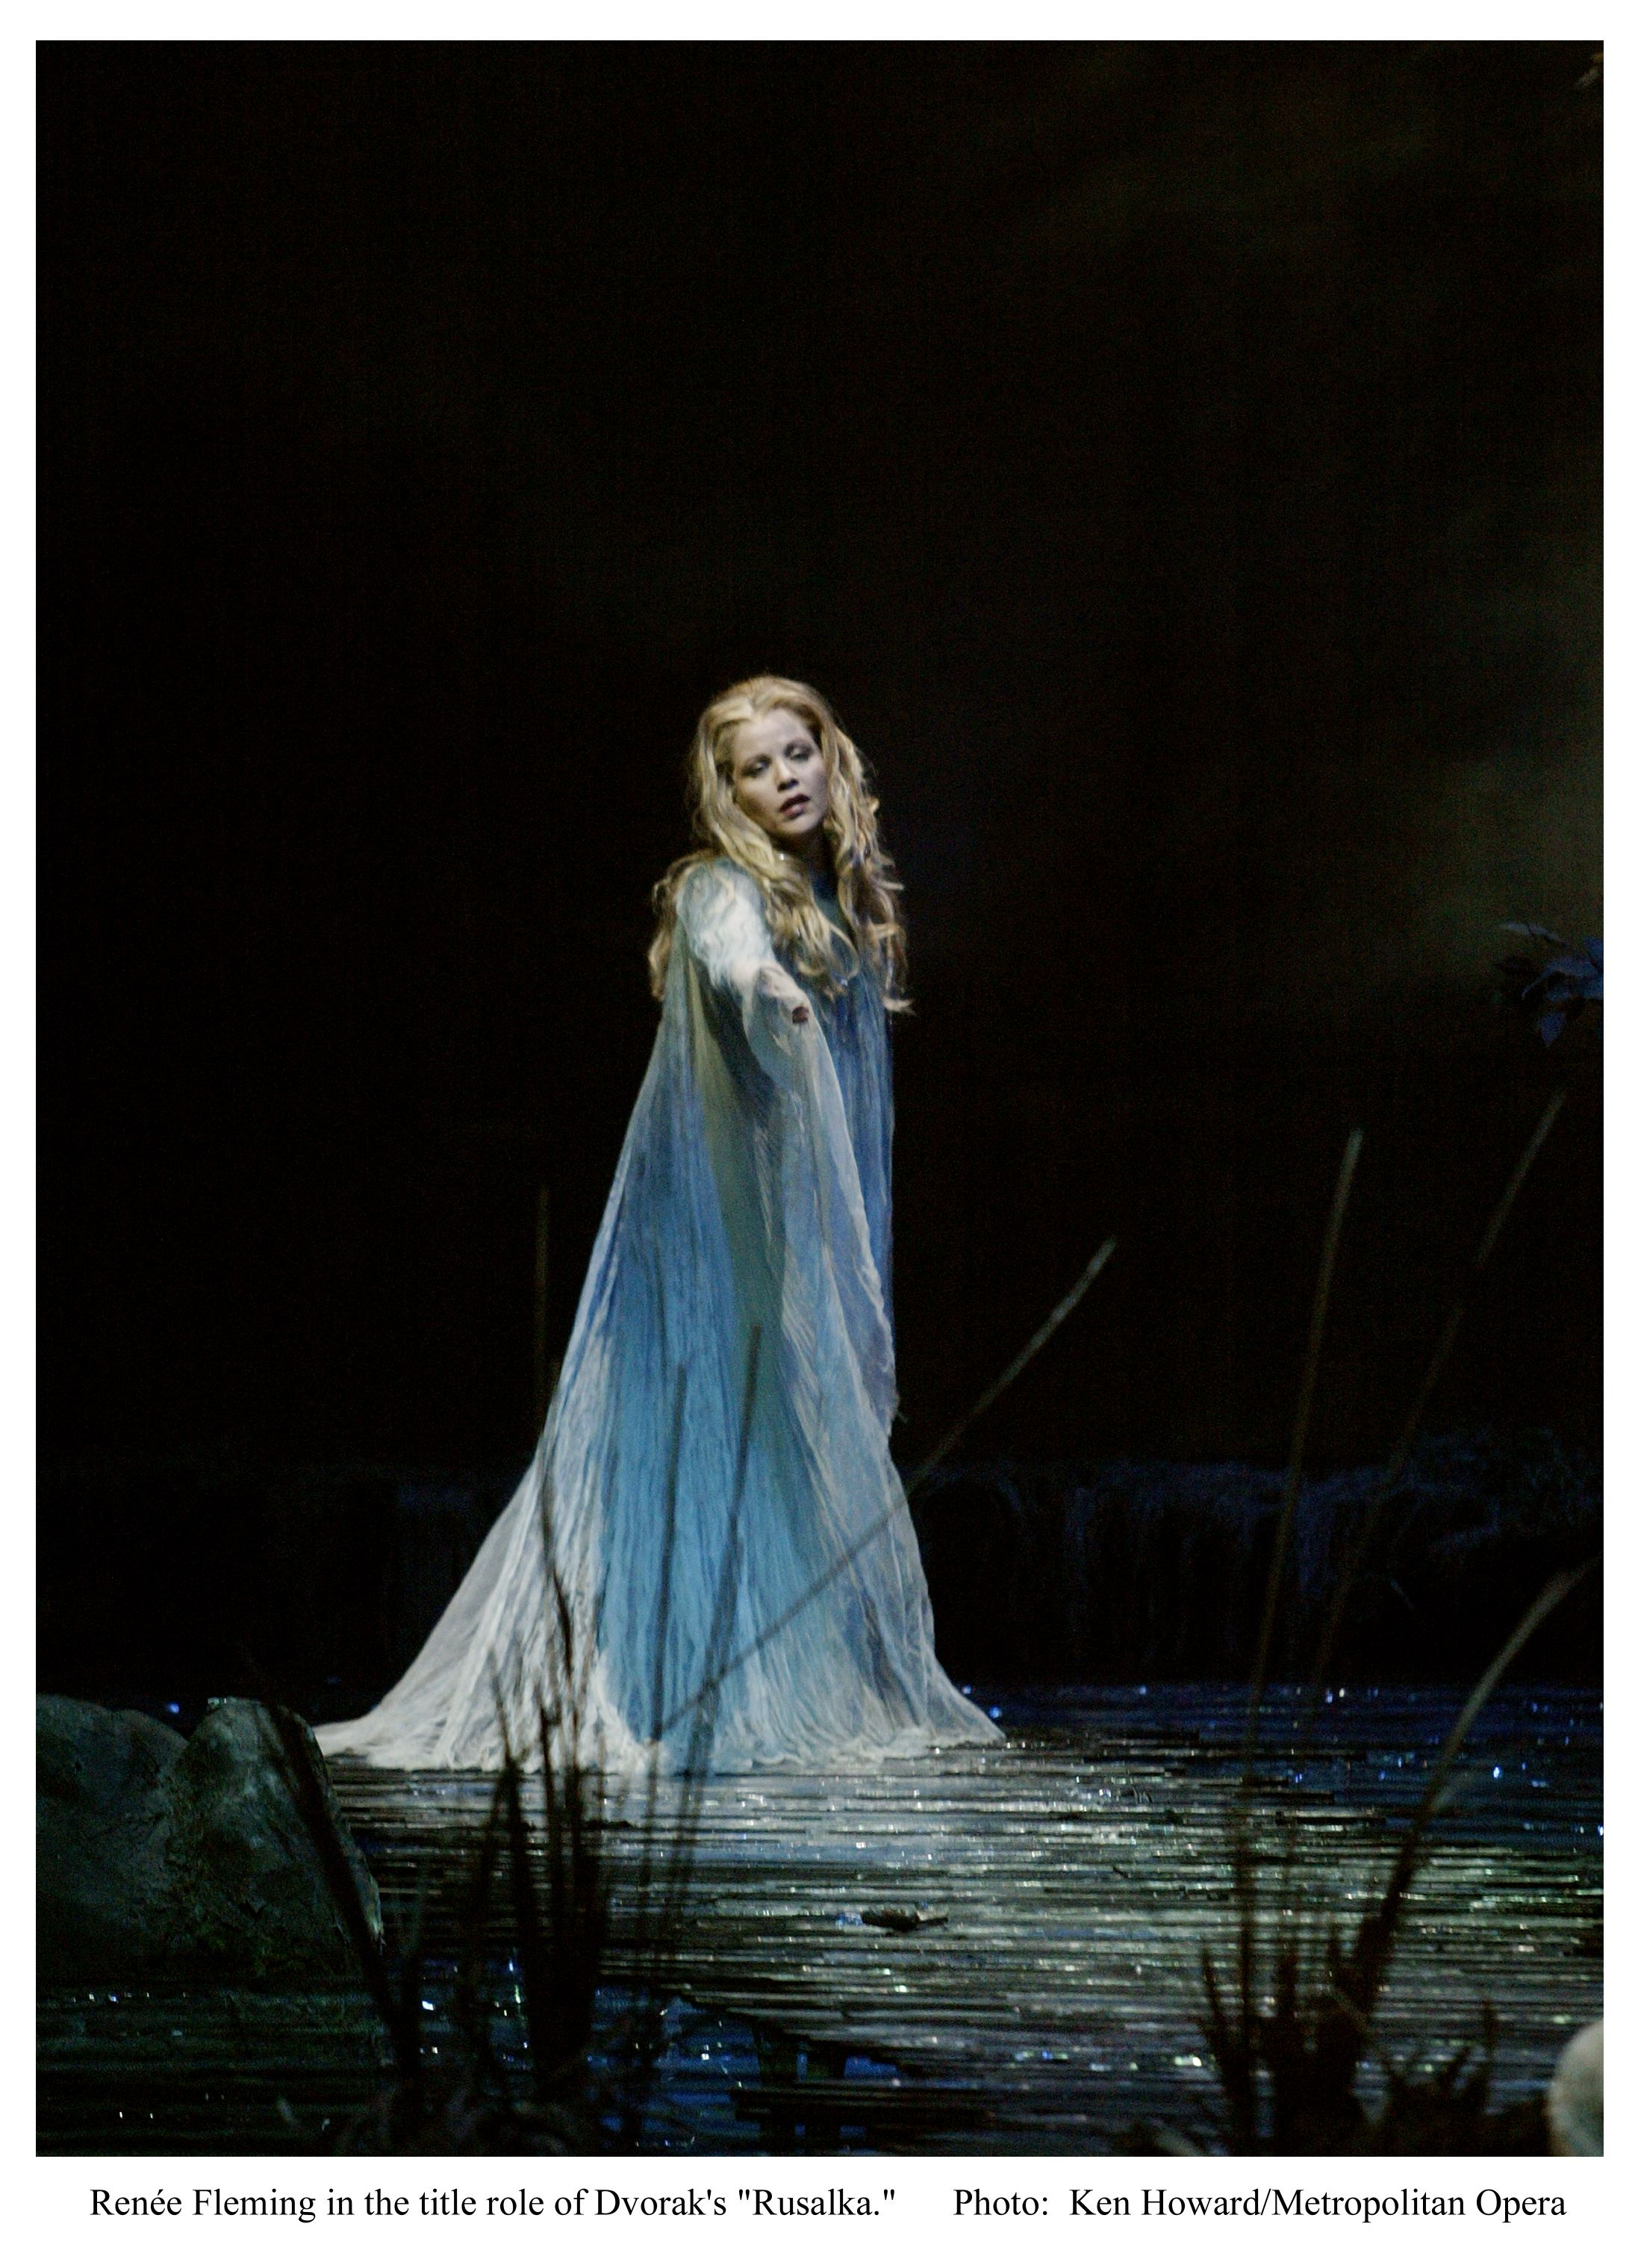 Rusalka. This is my favorite opera to sing and to watch. :)